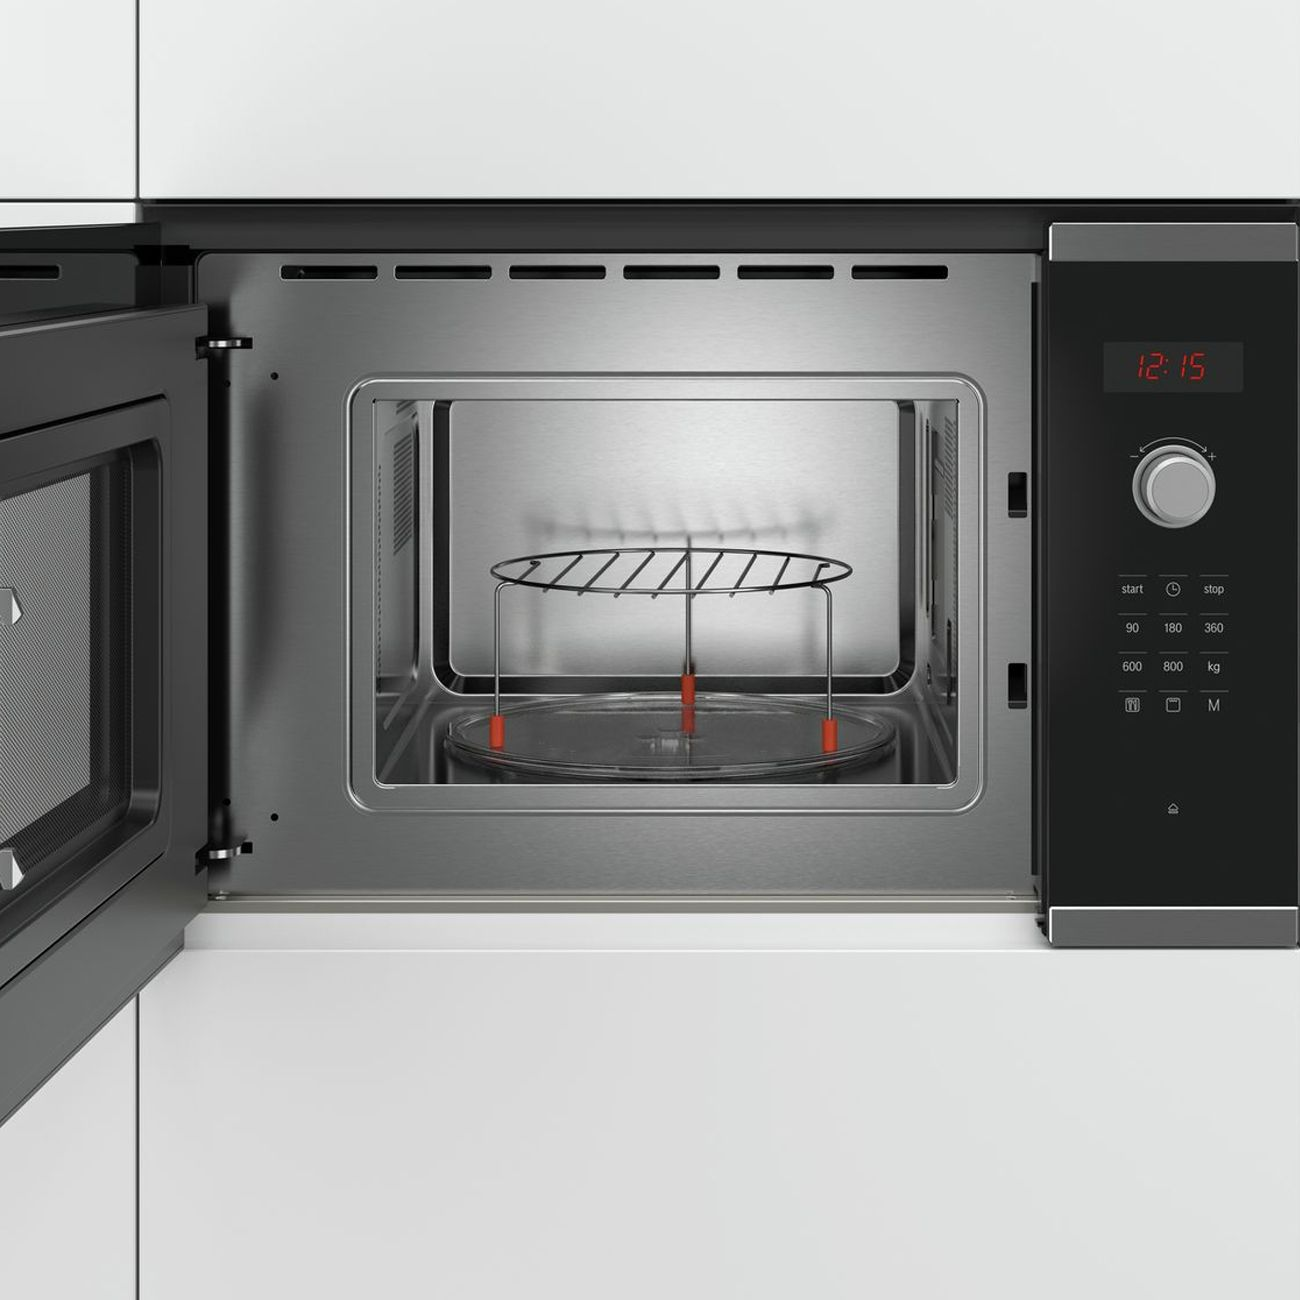 bosch serie 4 bel523ms0b stainless steel built in microwave oven with grill